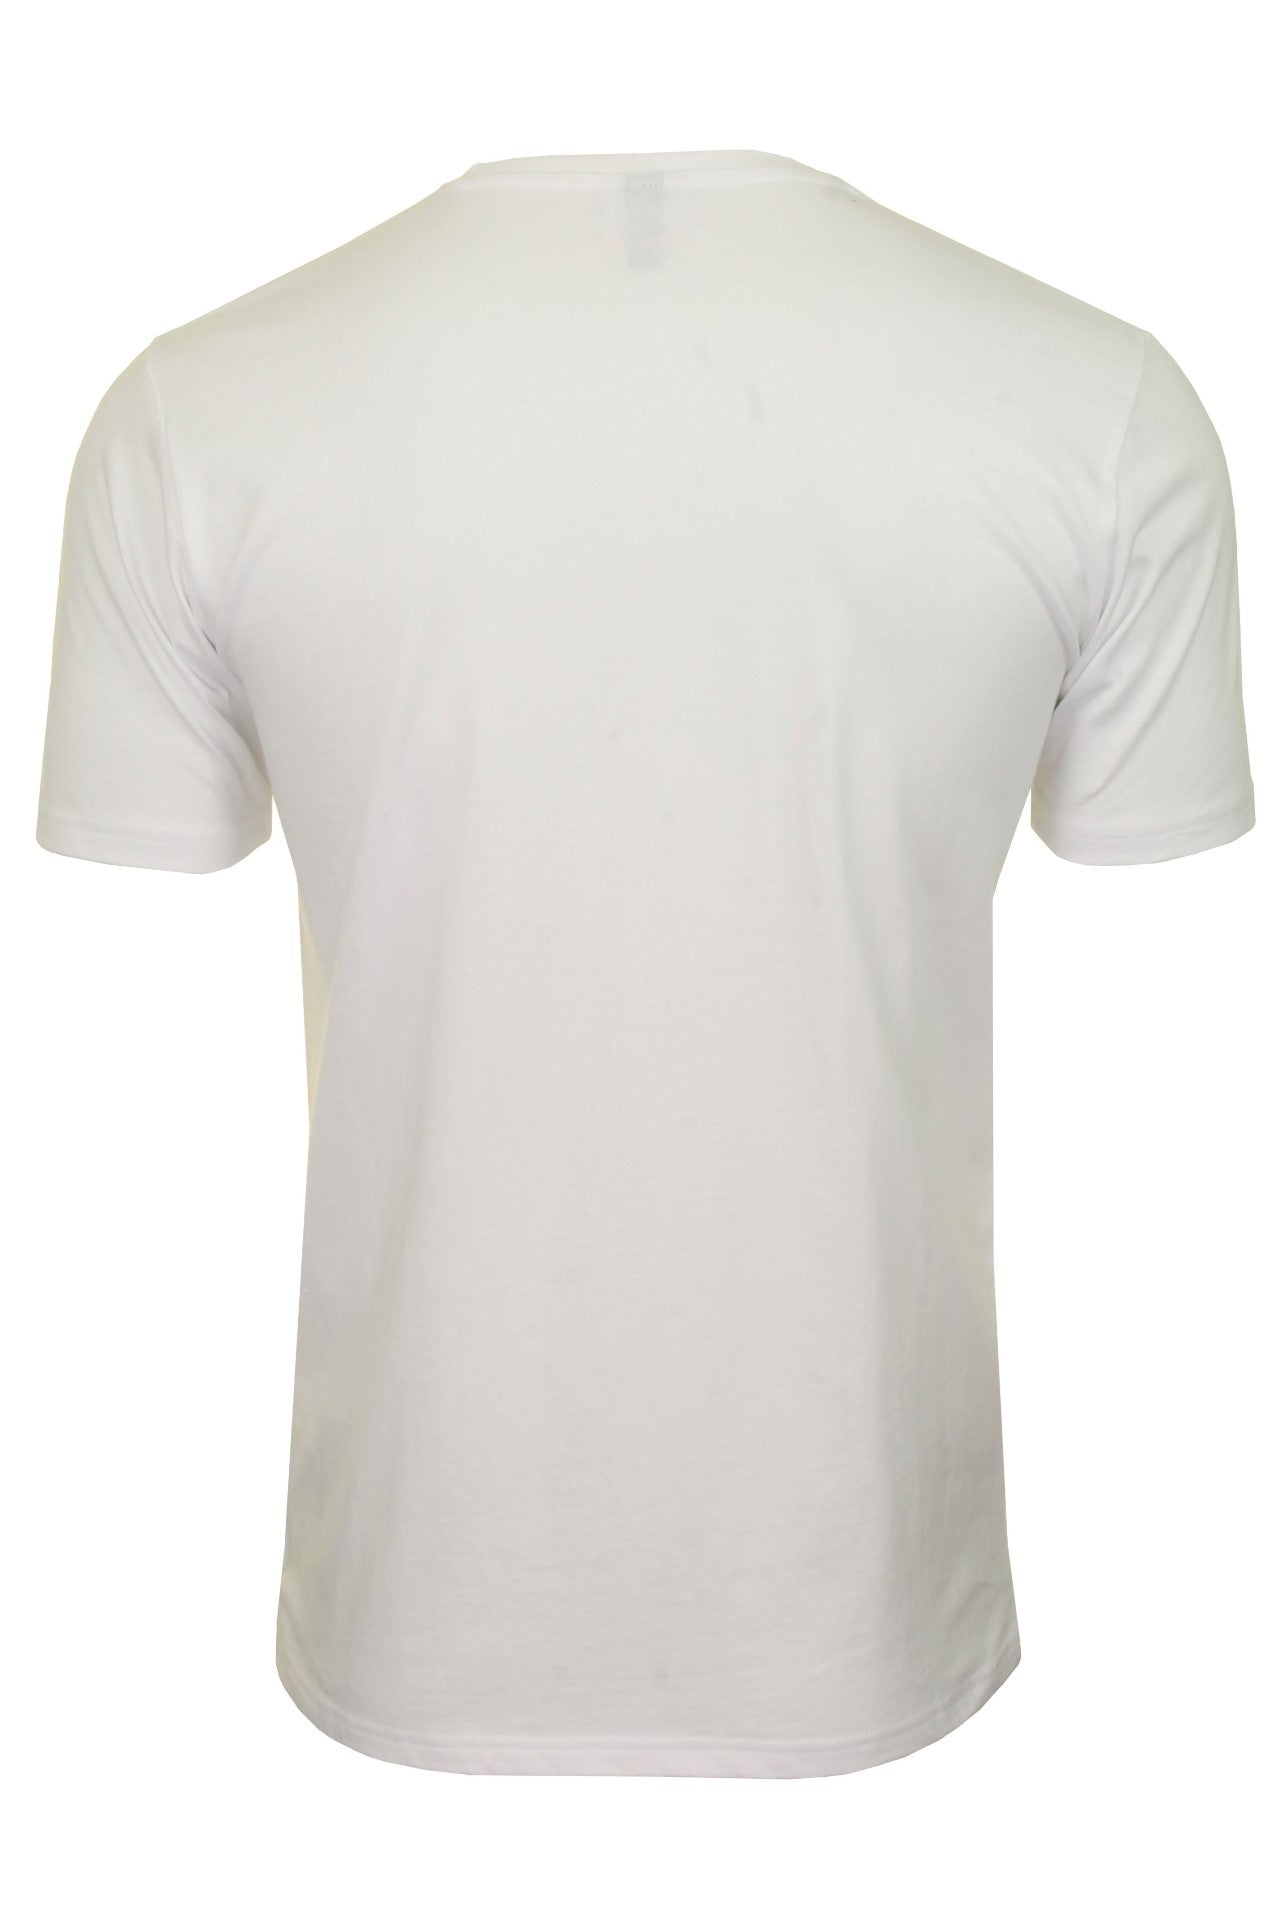 Ellesse Mens Logo Front Crew Neck T-Shirt 'PRADO' - Short Sleeved_03_Shc07405_White